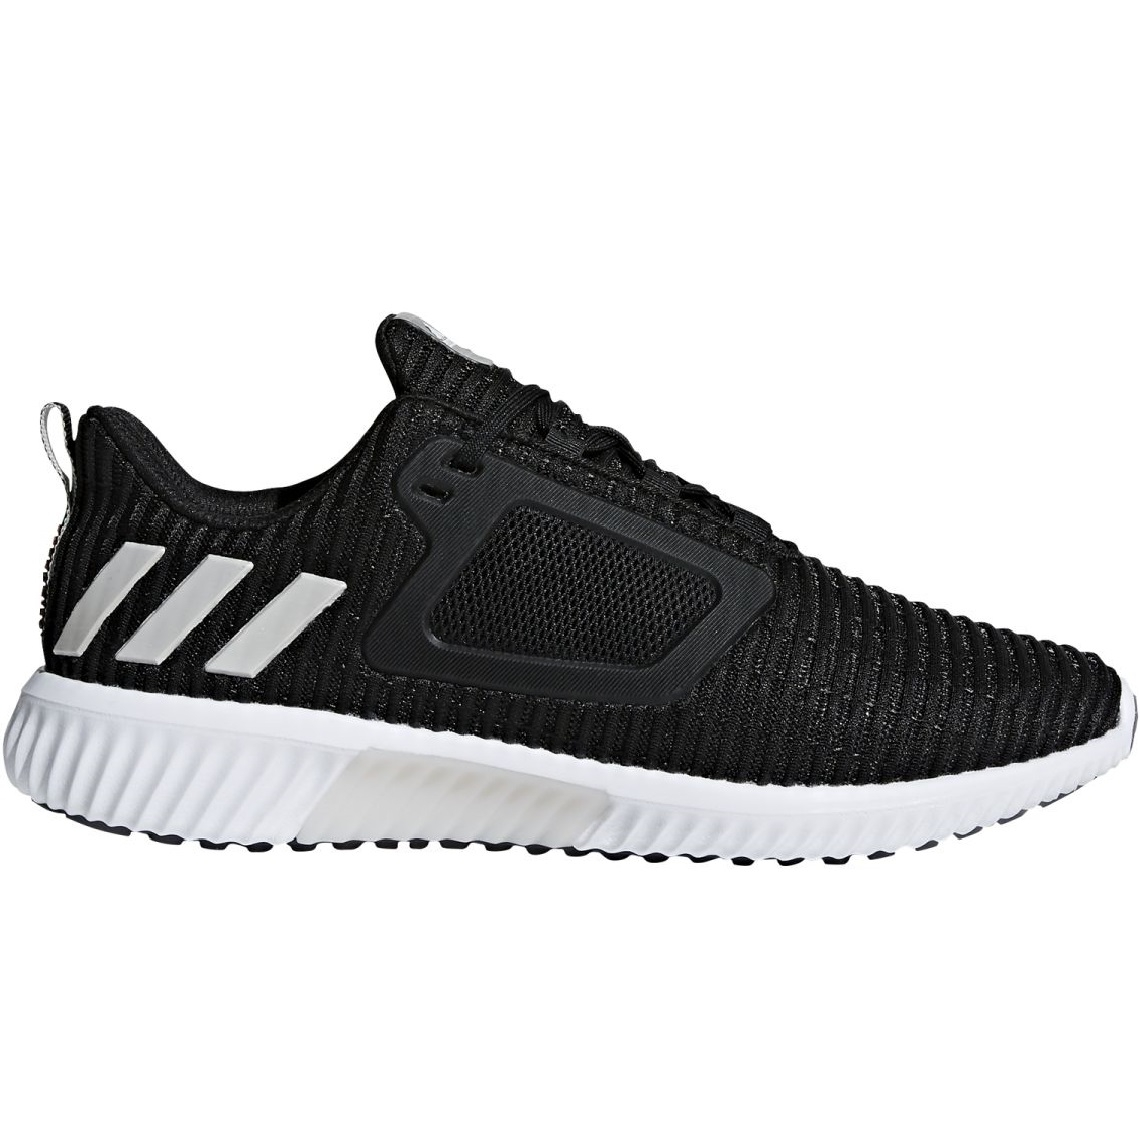 adidas Climacool Sneaker